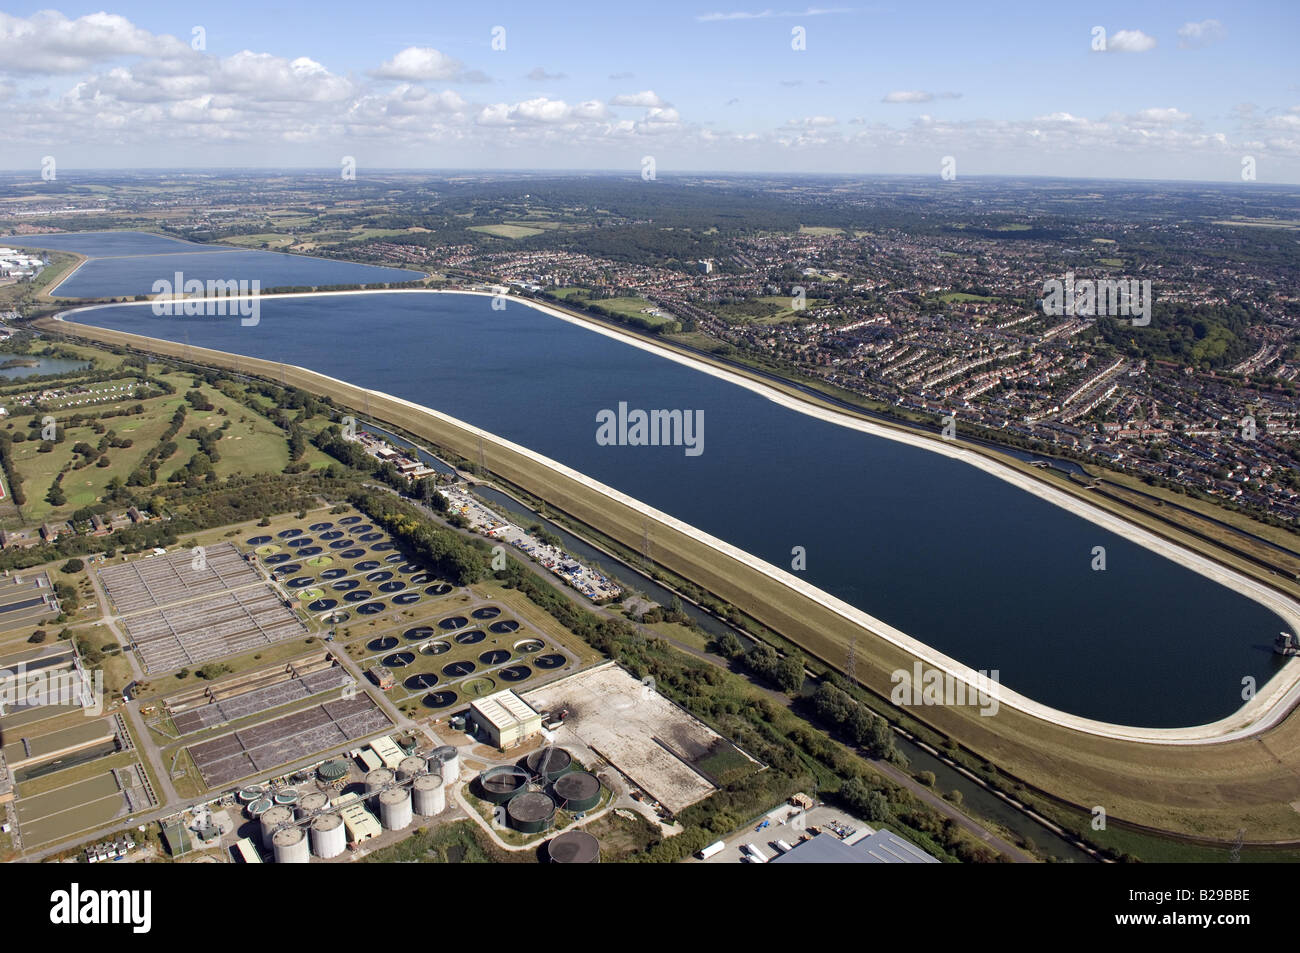 Lea Valley Reservoirs Date 12 03 2008 Ref ZB648 111149 0043 COMPULSORY CREDIT World Pictures Photoshot - Stock Image